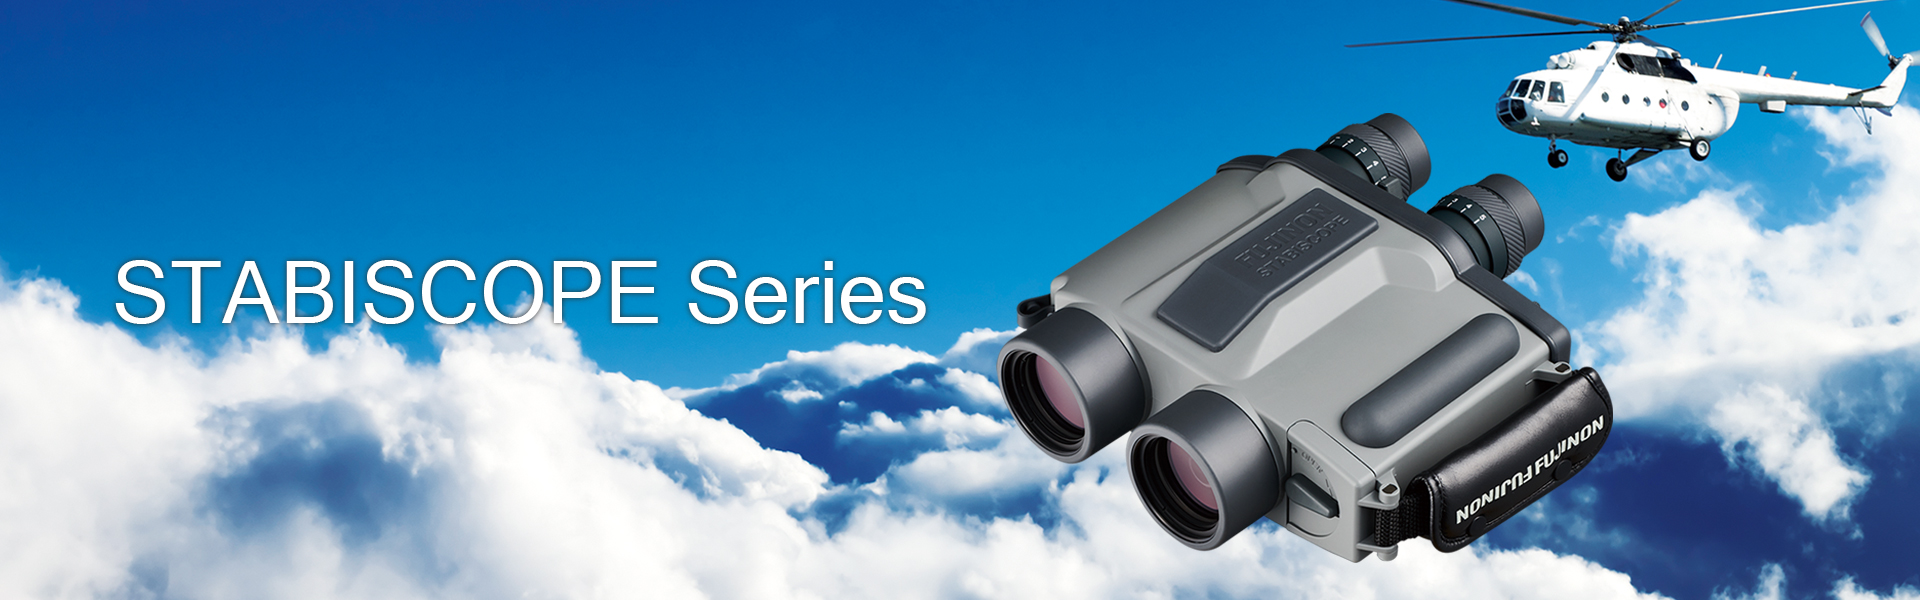 [photo] STABISCOPE Series binoculars in front of a high-altitude-sky, cloudy background with white helicopter flying